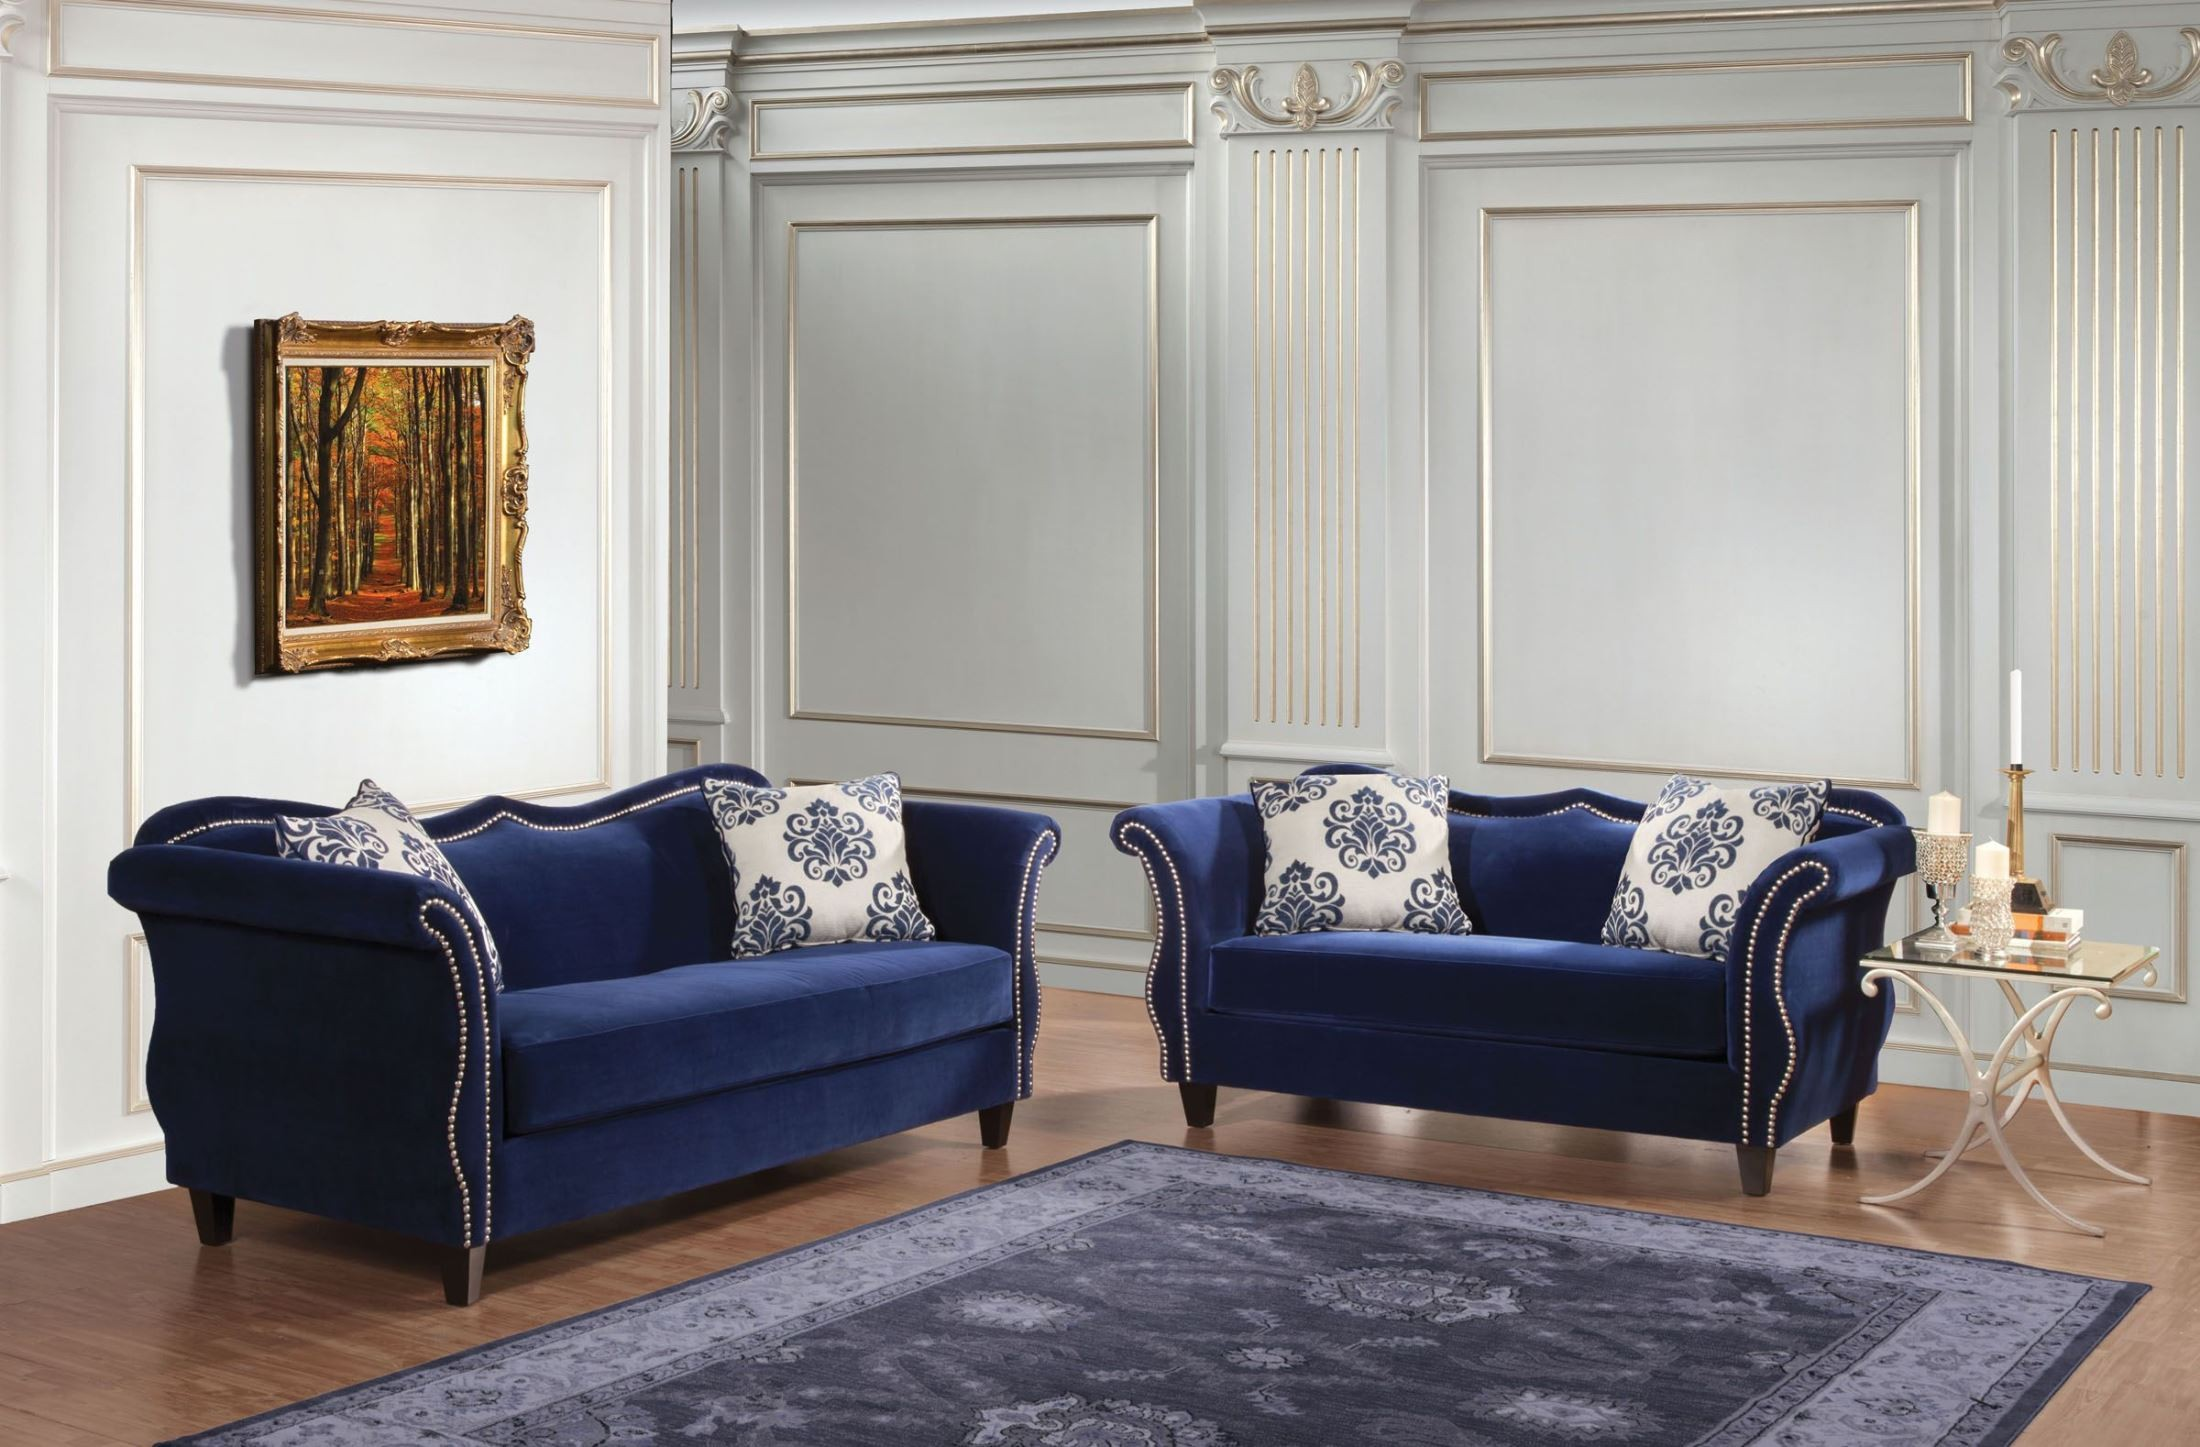 Zaffiro royal blue living room set sm2231 sf furniture for Blue living room chairs